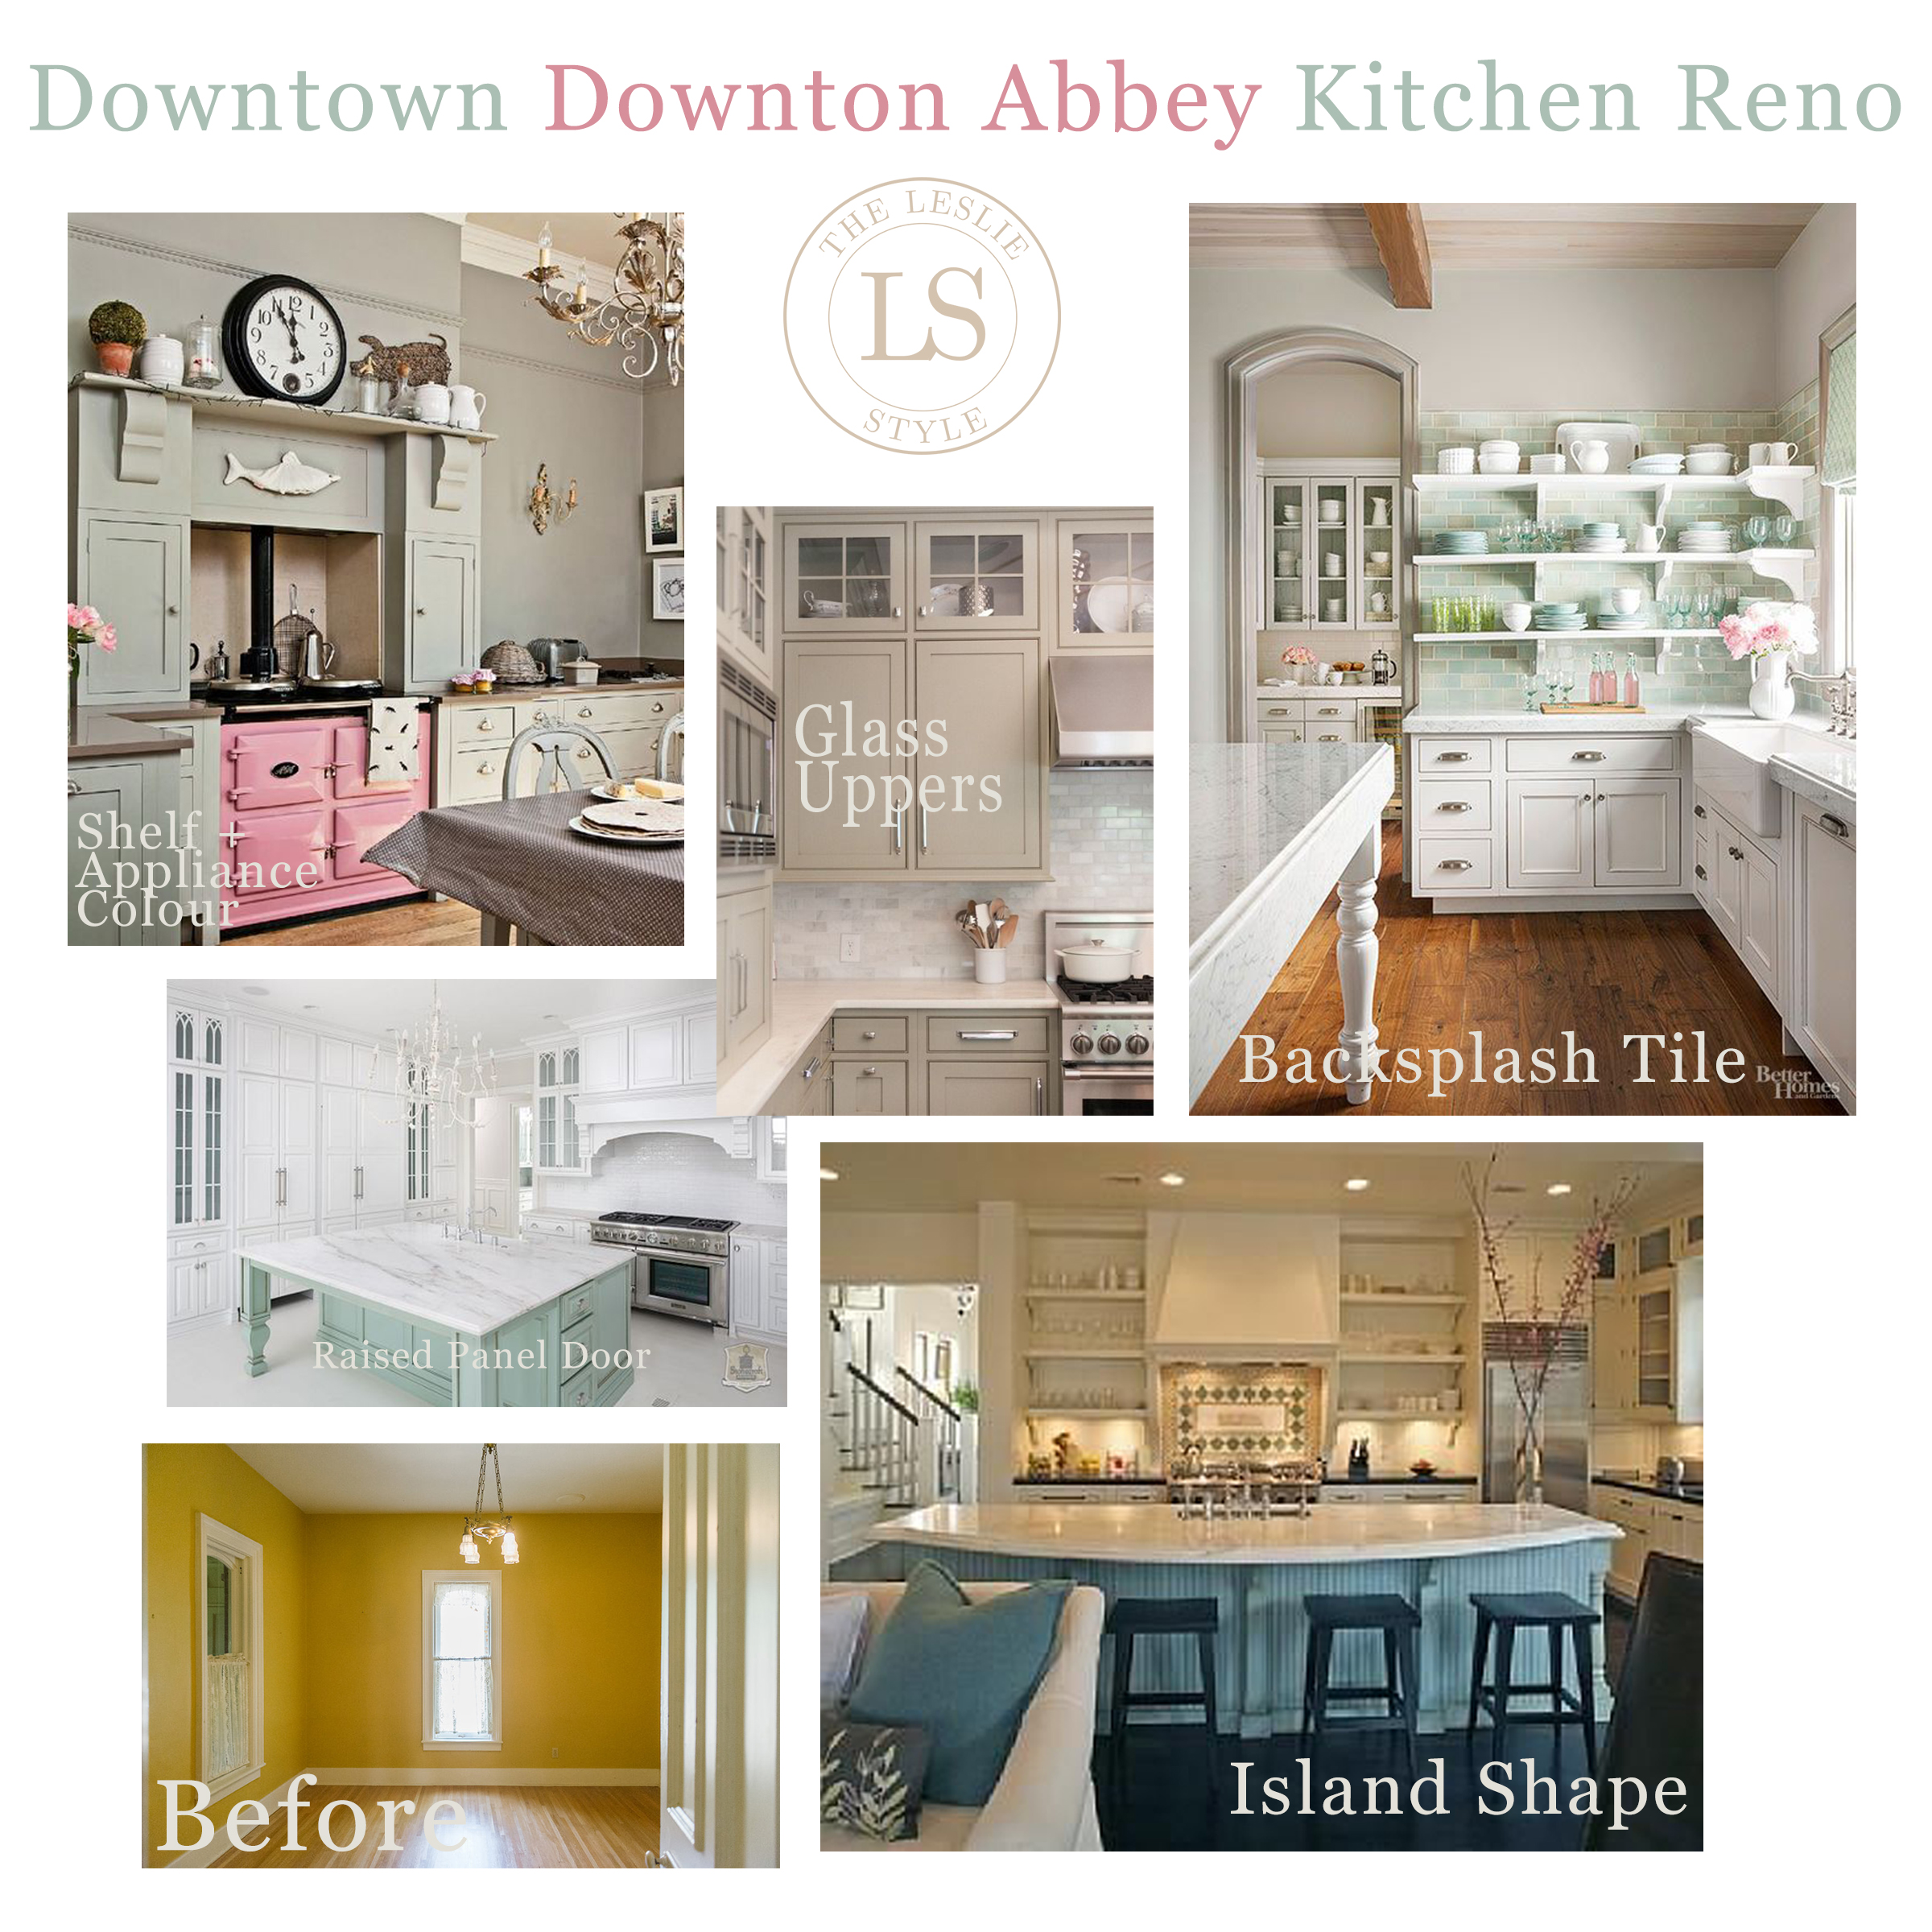 One Room Challenge Week 1: Downtown Downton Abbey Kitchen Reno